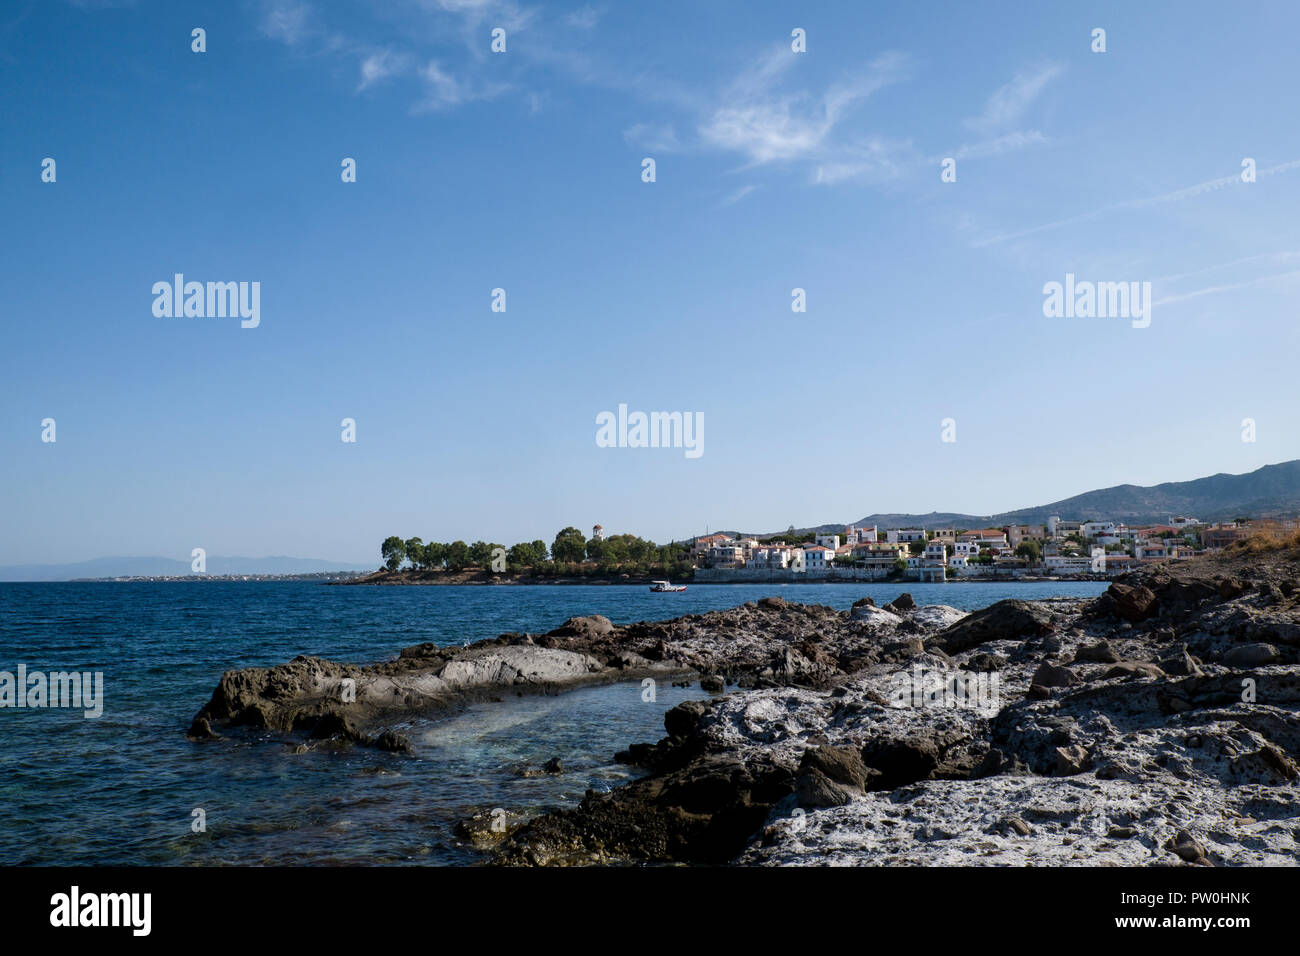 Looking back across the bay to Perdika on the greek island of Aegina.  The view is from coast path on the peninsula opposite the harbour. - Stock Image